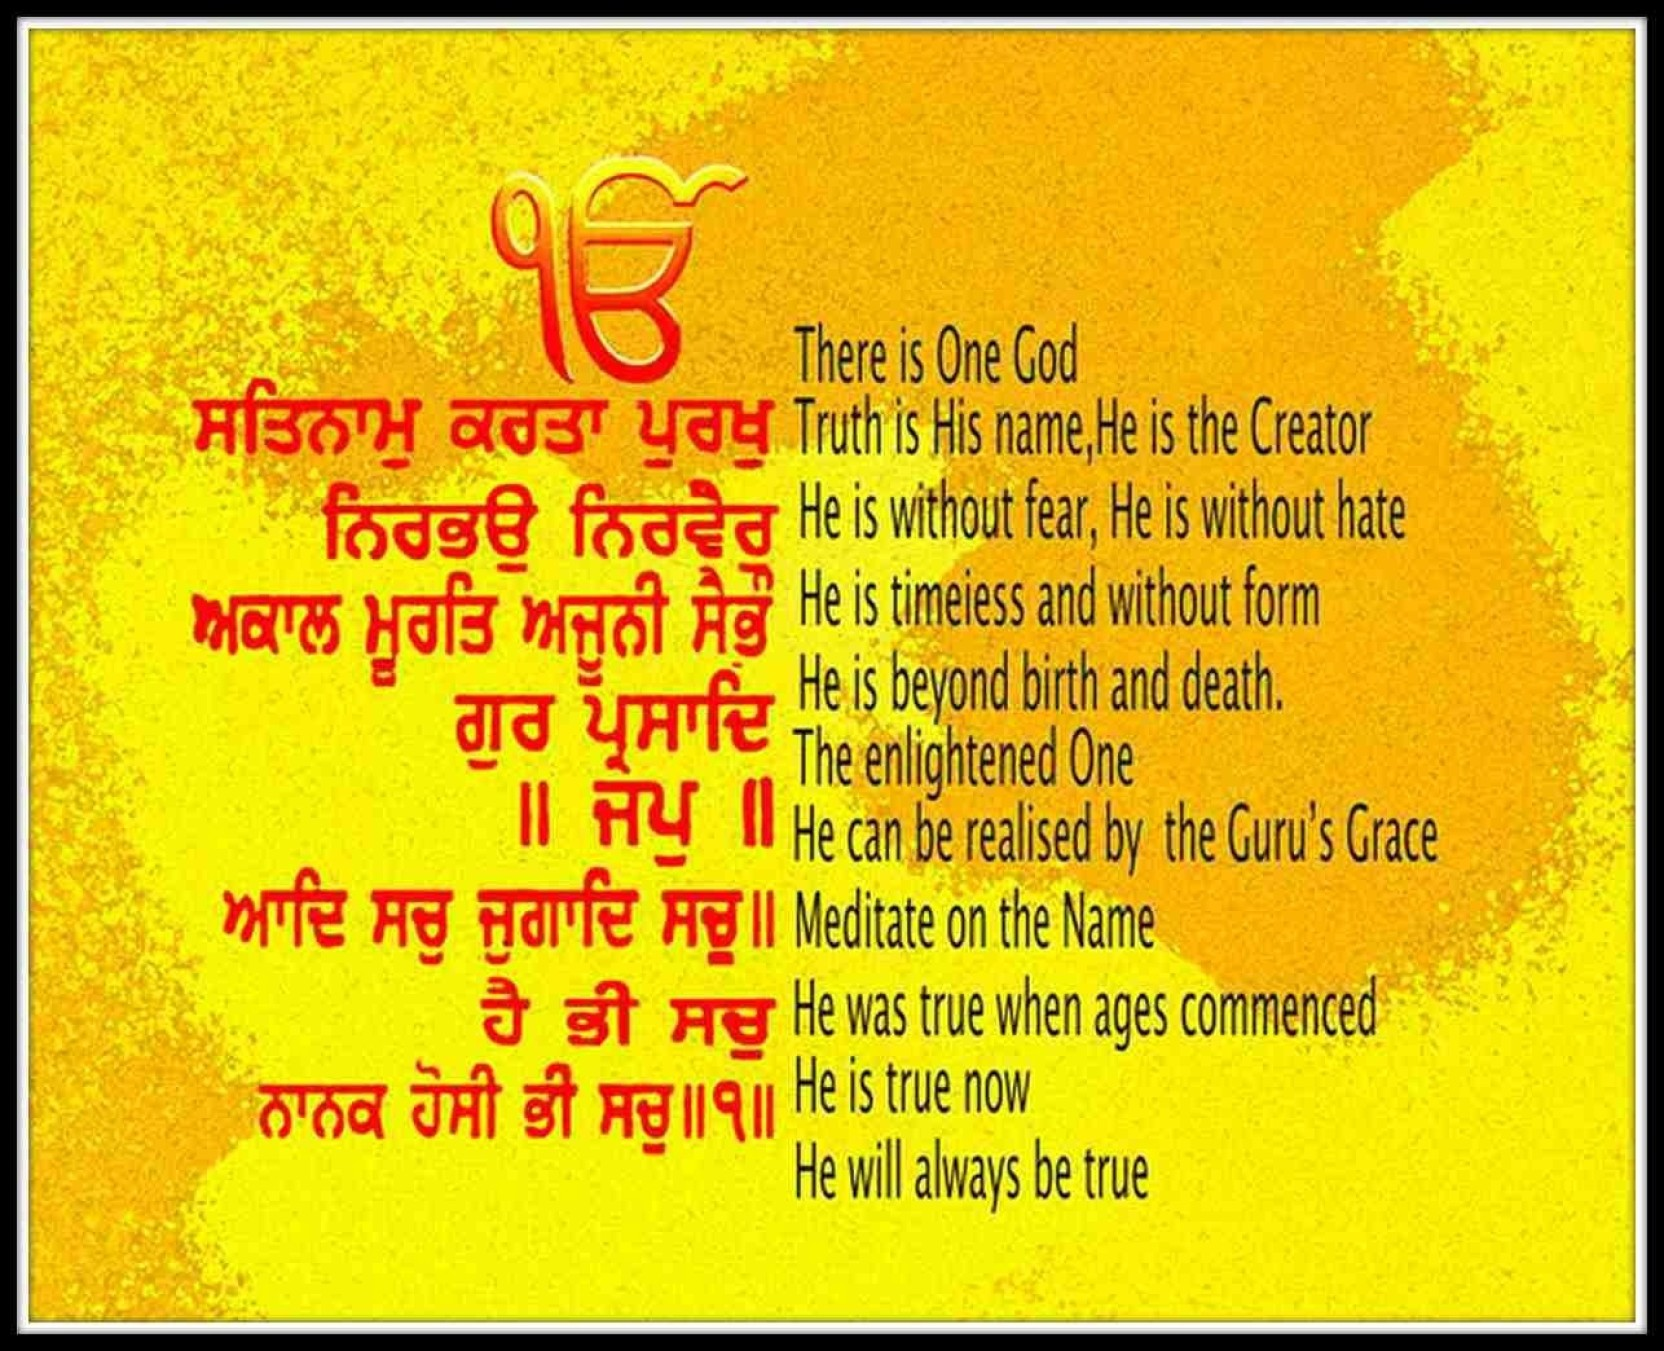 Mool mantra Canvas Art - Religious posters in India - Buy art, film ...